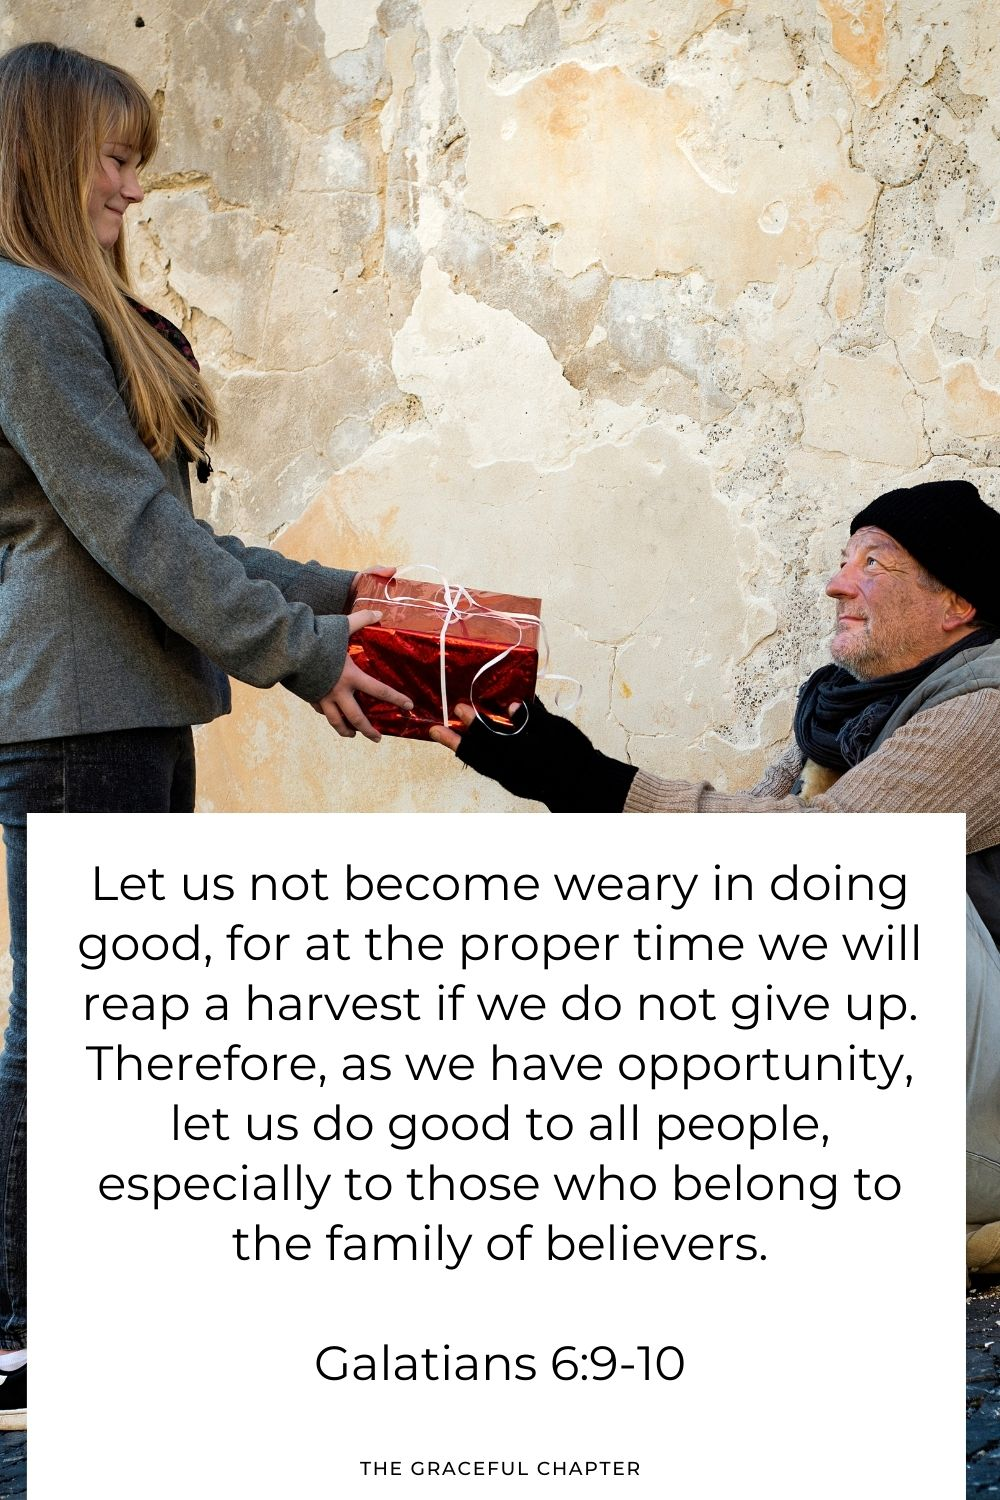 Let us not become weary in doing good, for at the proper time we will reap a harvest if we do not give up. Therefore, as we have opportunity, let us do good to all people, especially to those who belong to the family of believers. Galatians 6:9-10